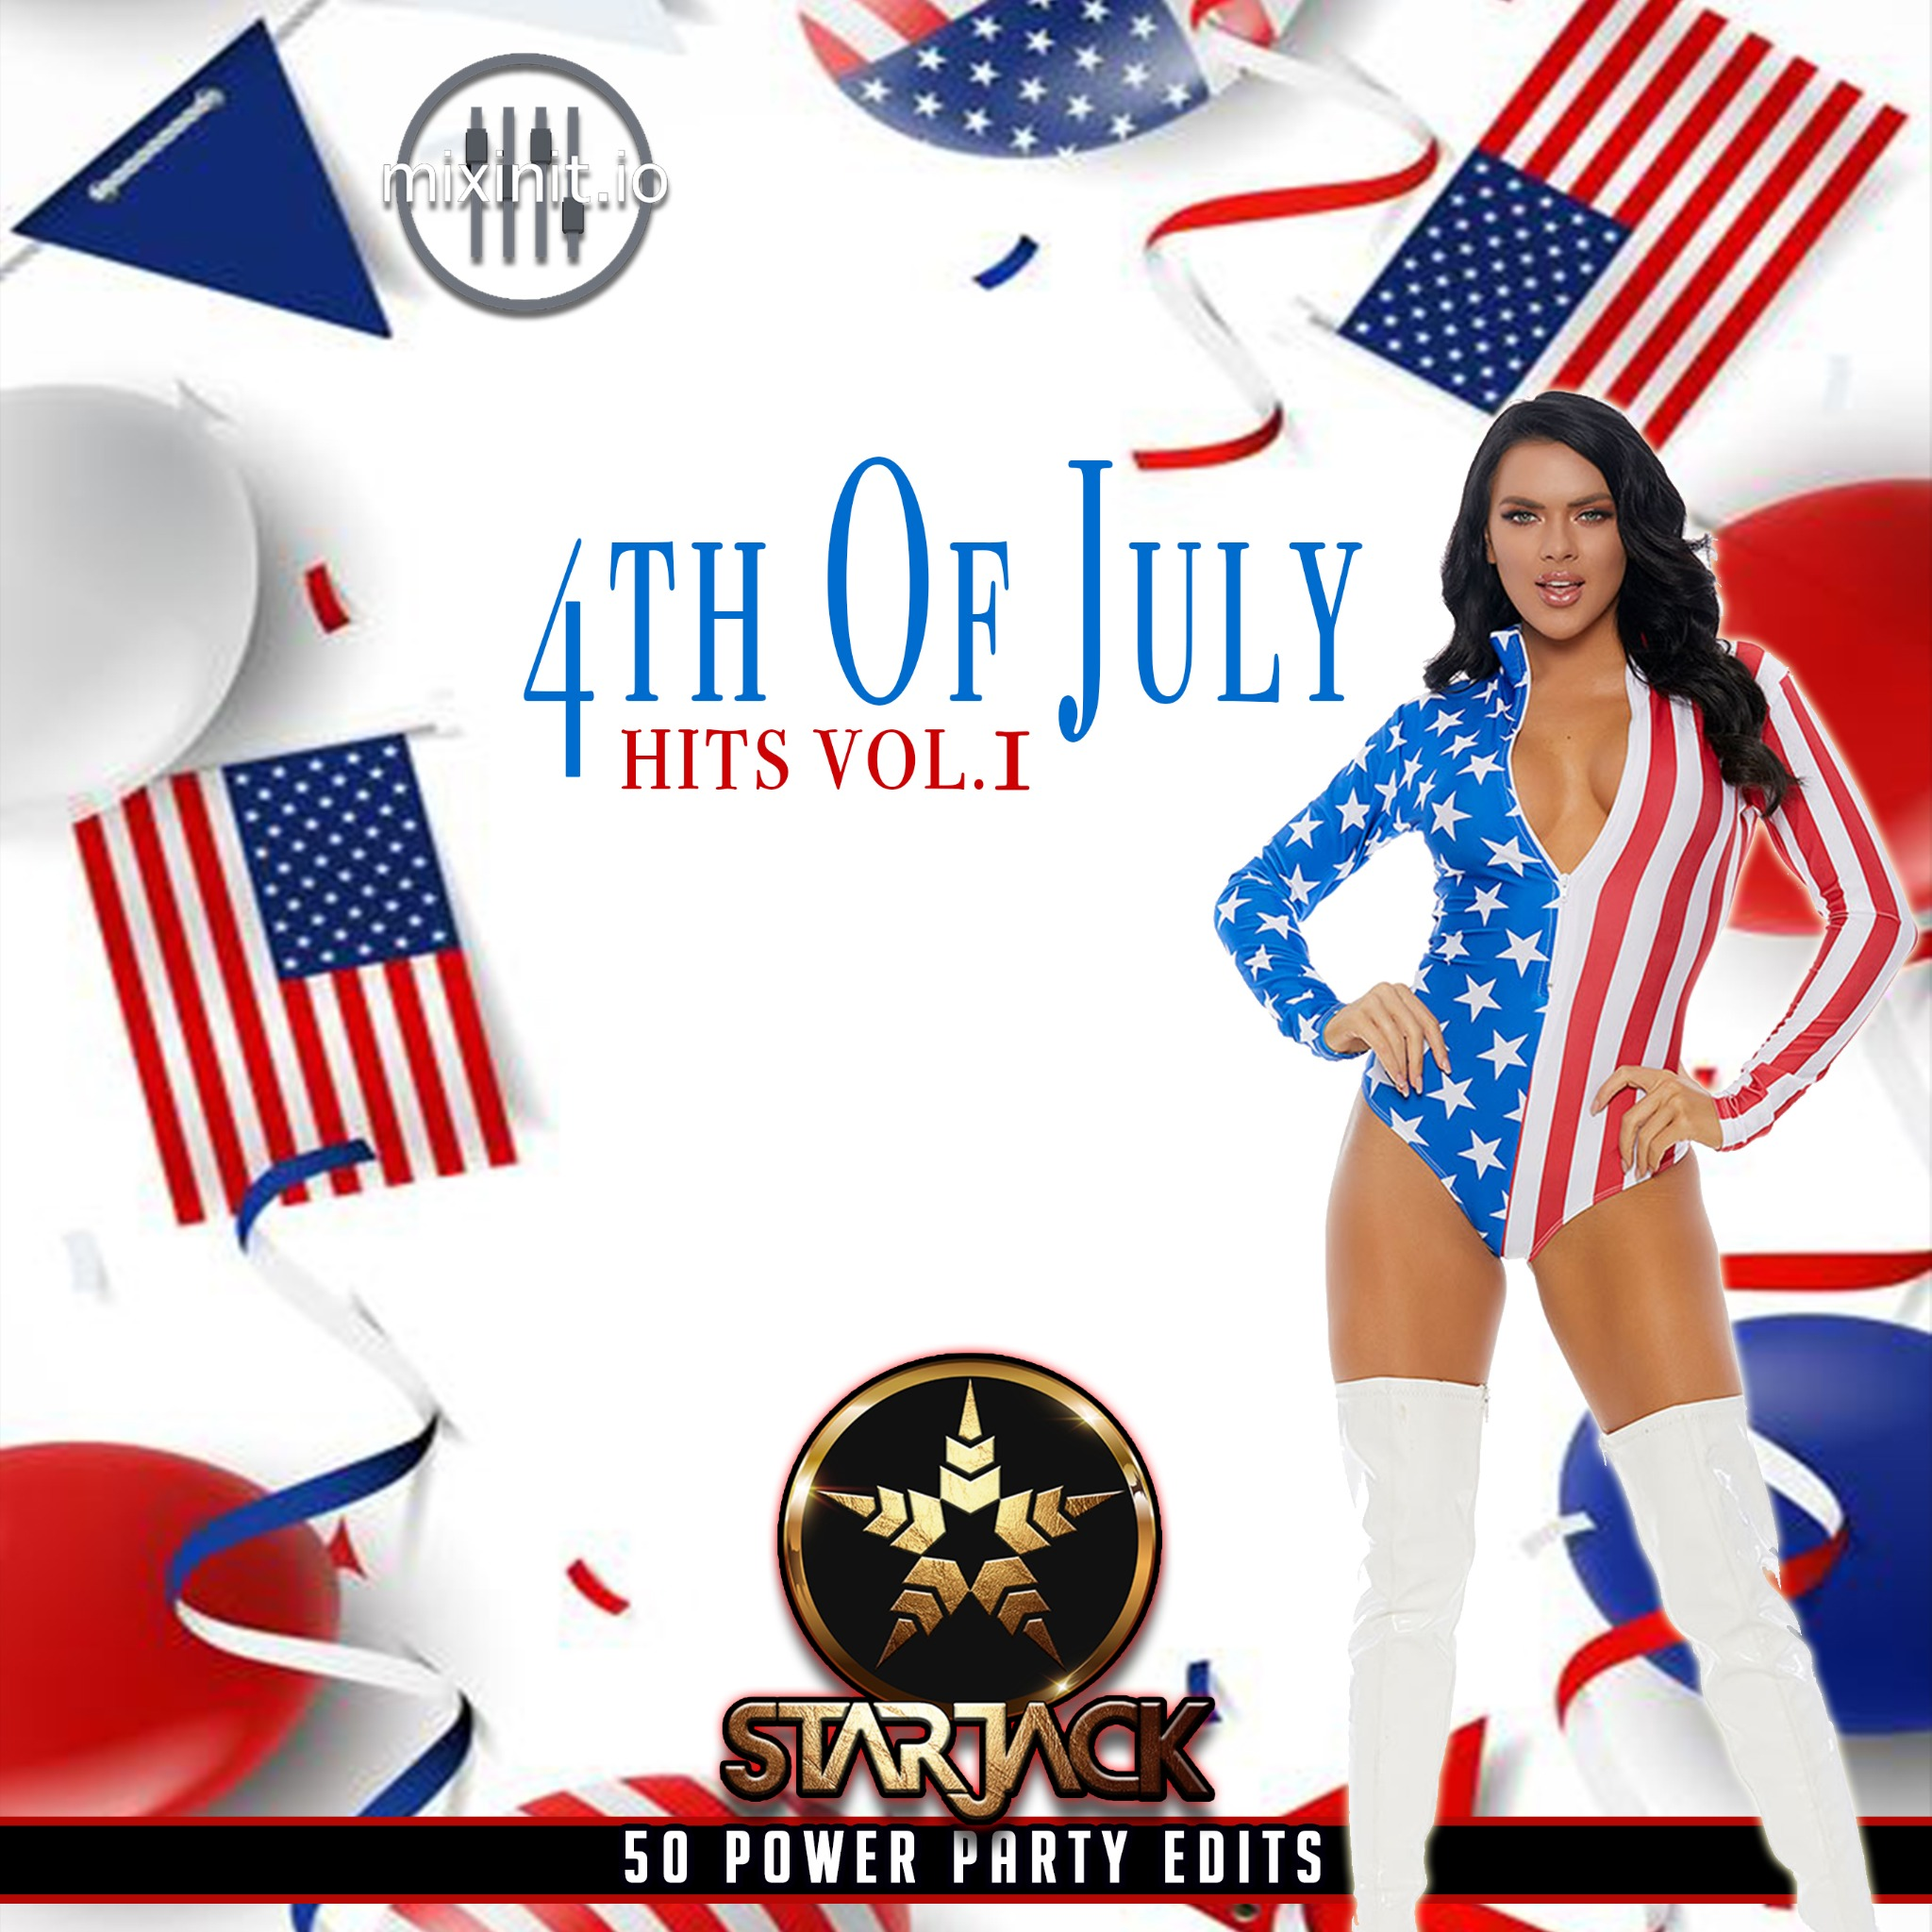 Starjack - 4th Of July Hits Vol. 1 (50 Power Party Edits)